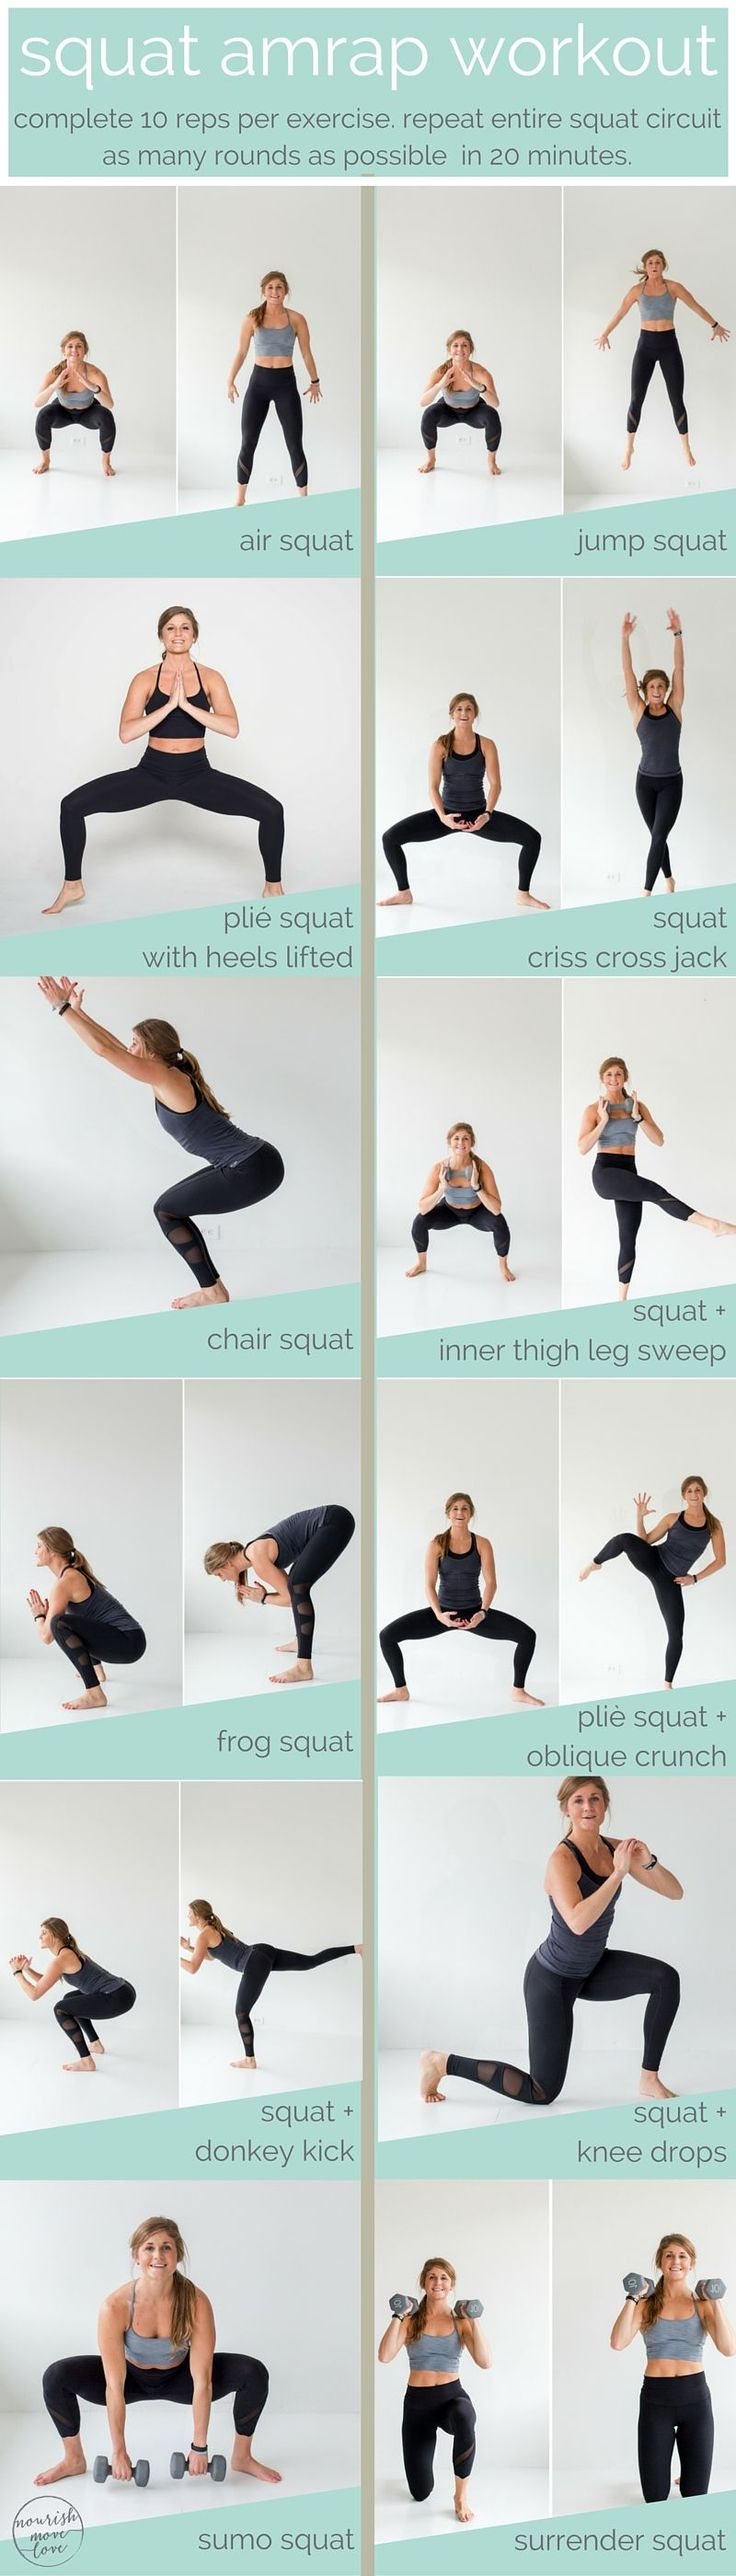 12 Squat Variations. Lower body routine, AMRAP workout. Tighten and tone legs, thighs, and butt for the summer booty you want. -- www.nourishmovelove.com